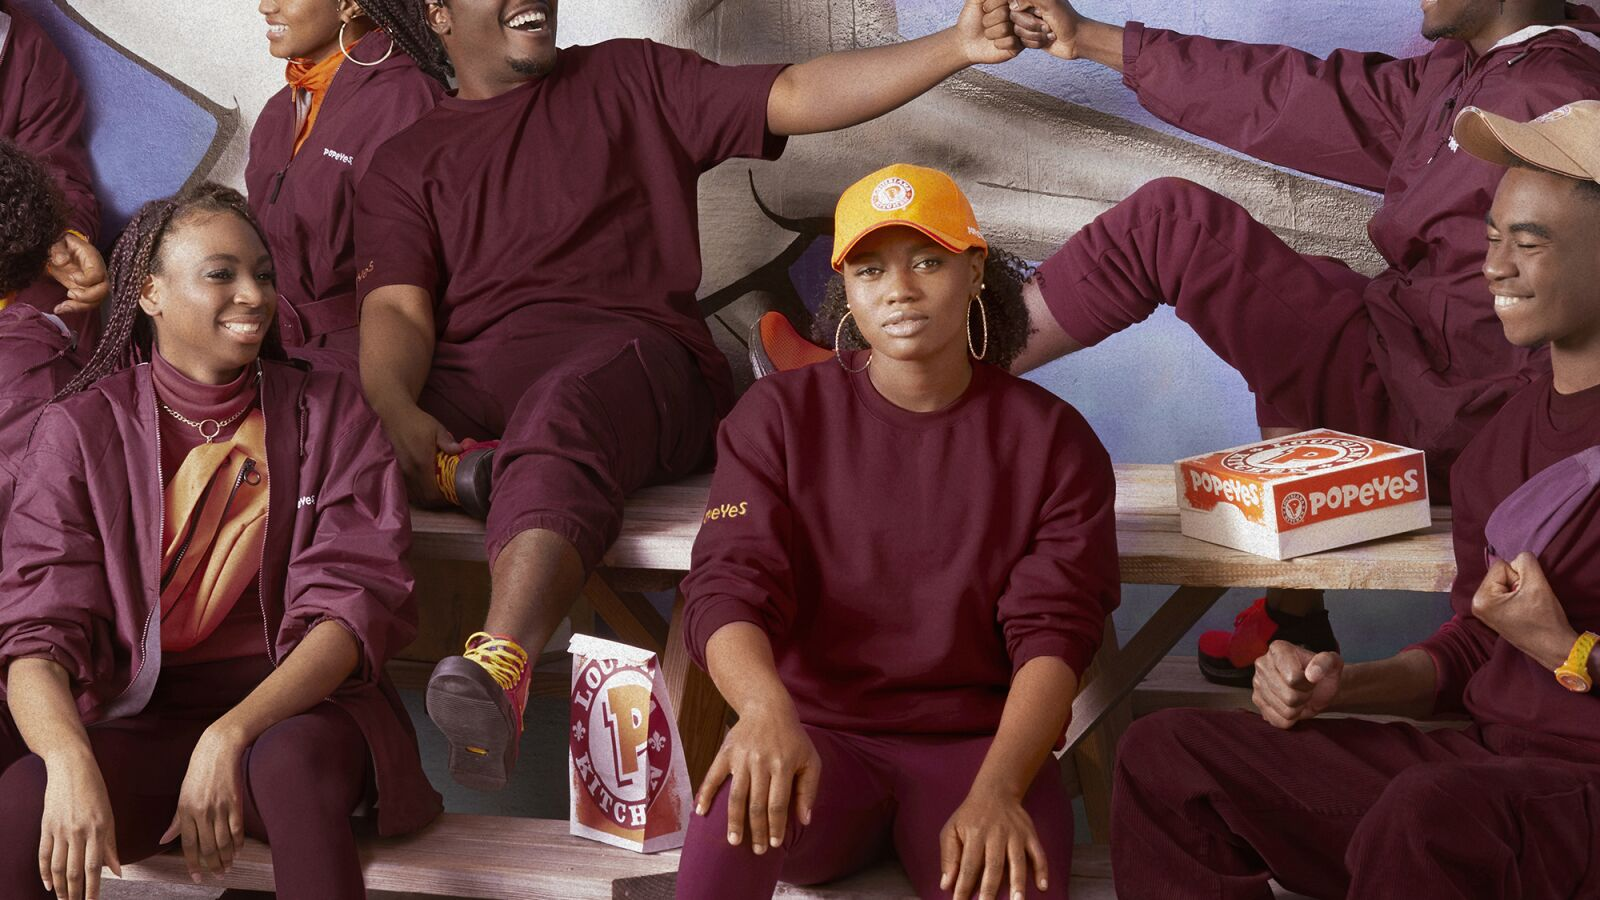 Love Popeyes, why not dress in the latest Popeyes fashion